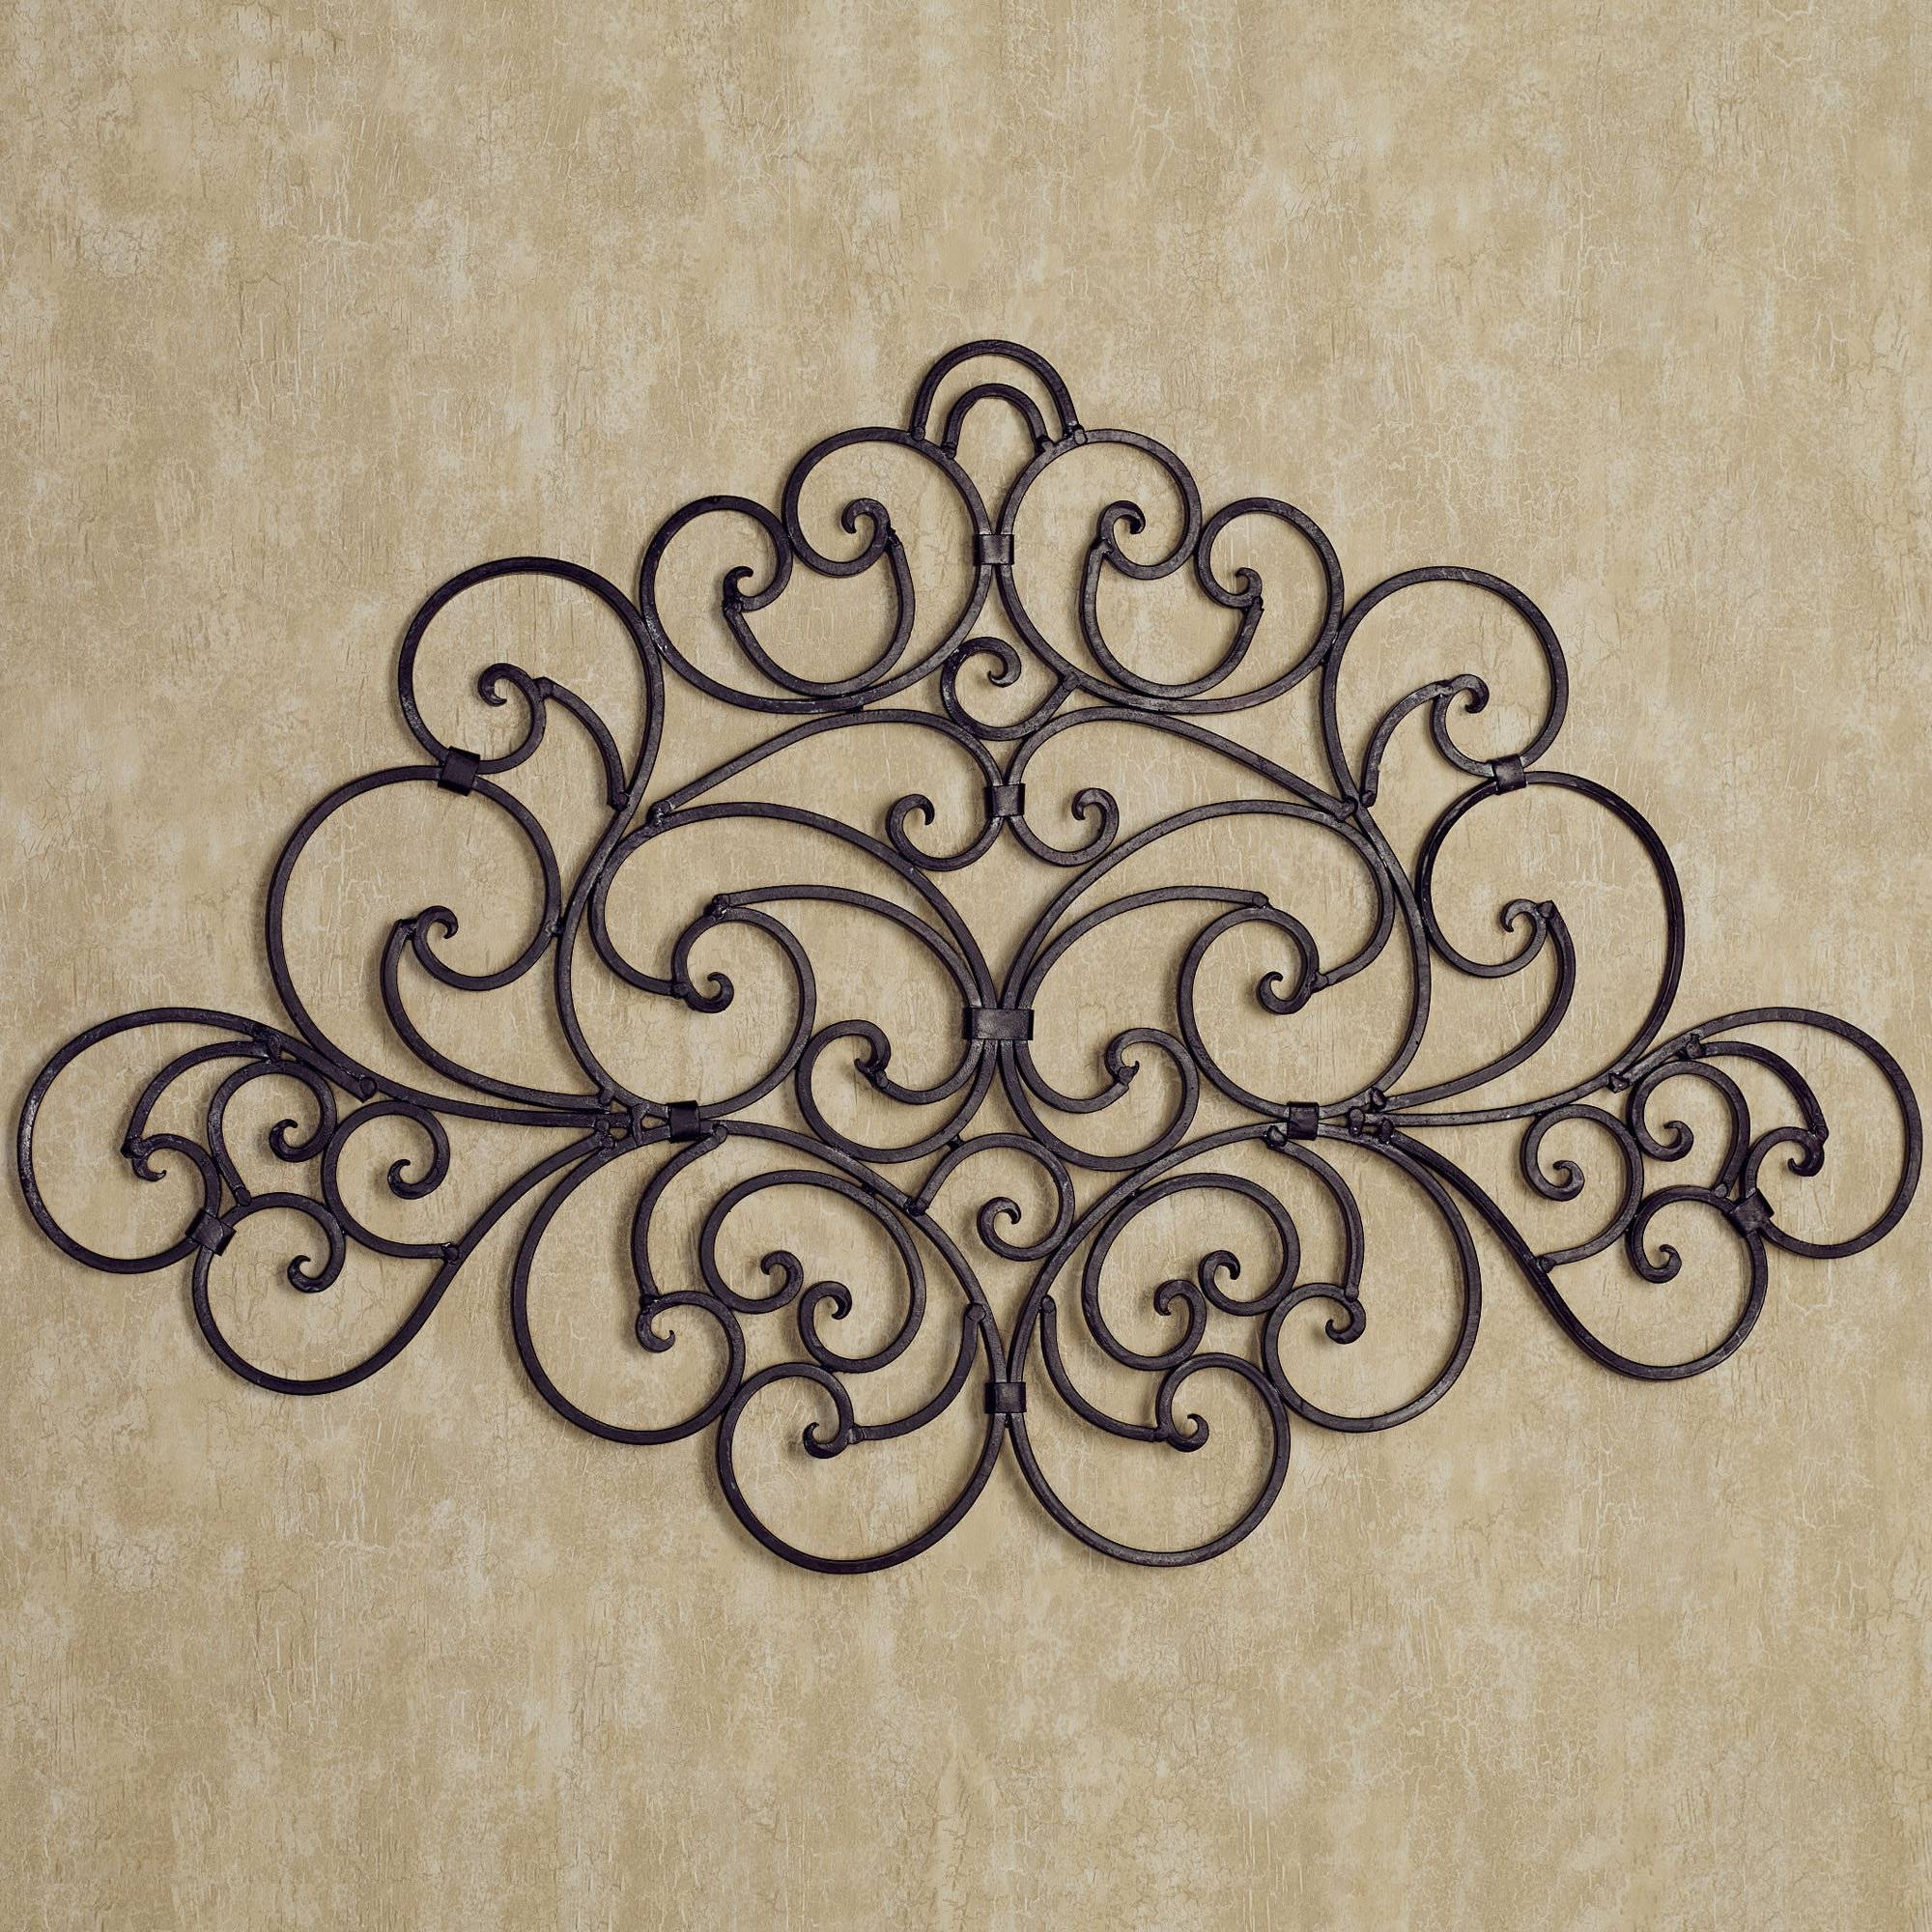 Black In Wrought Iron Wall Decor – Home Designing With Regard To Most Up To Date Tuscan Wrought Iron Wall Art (View 12 of 20)